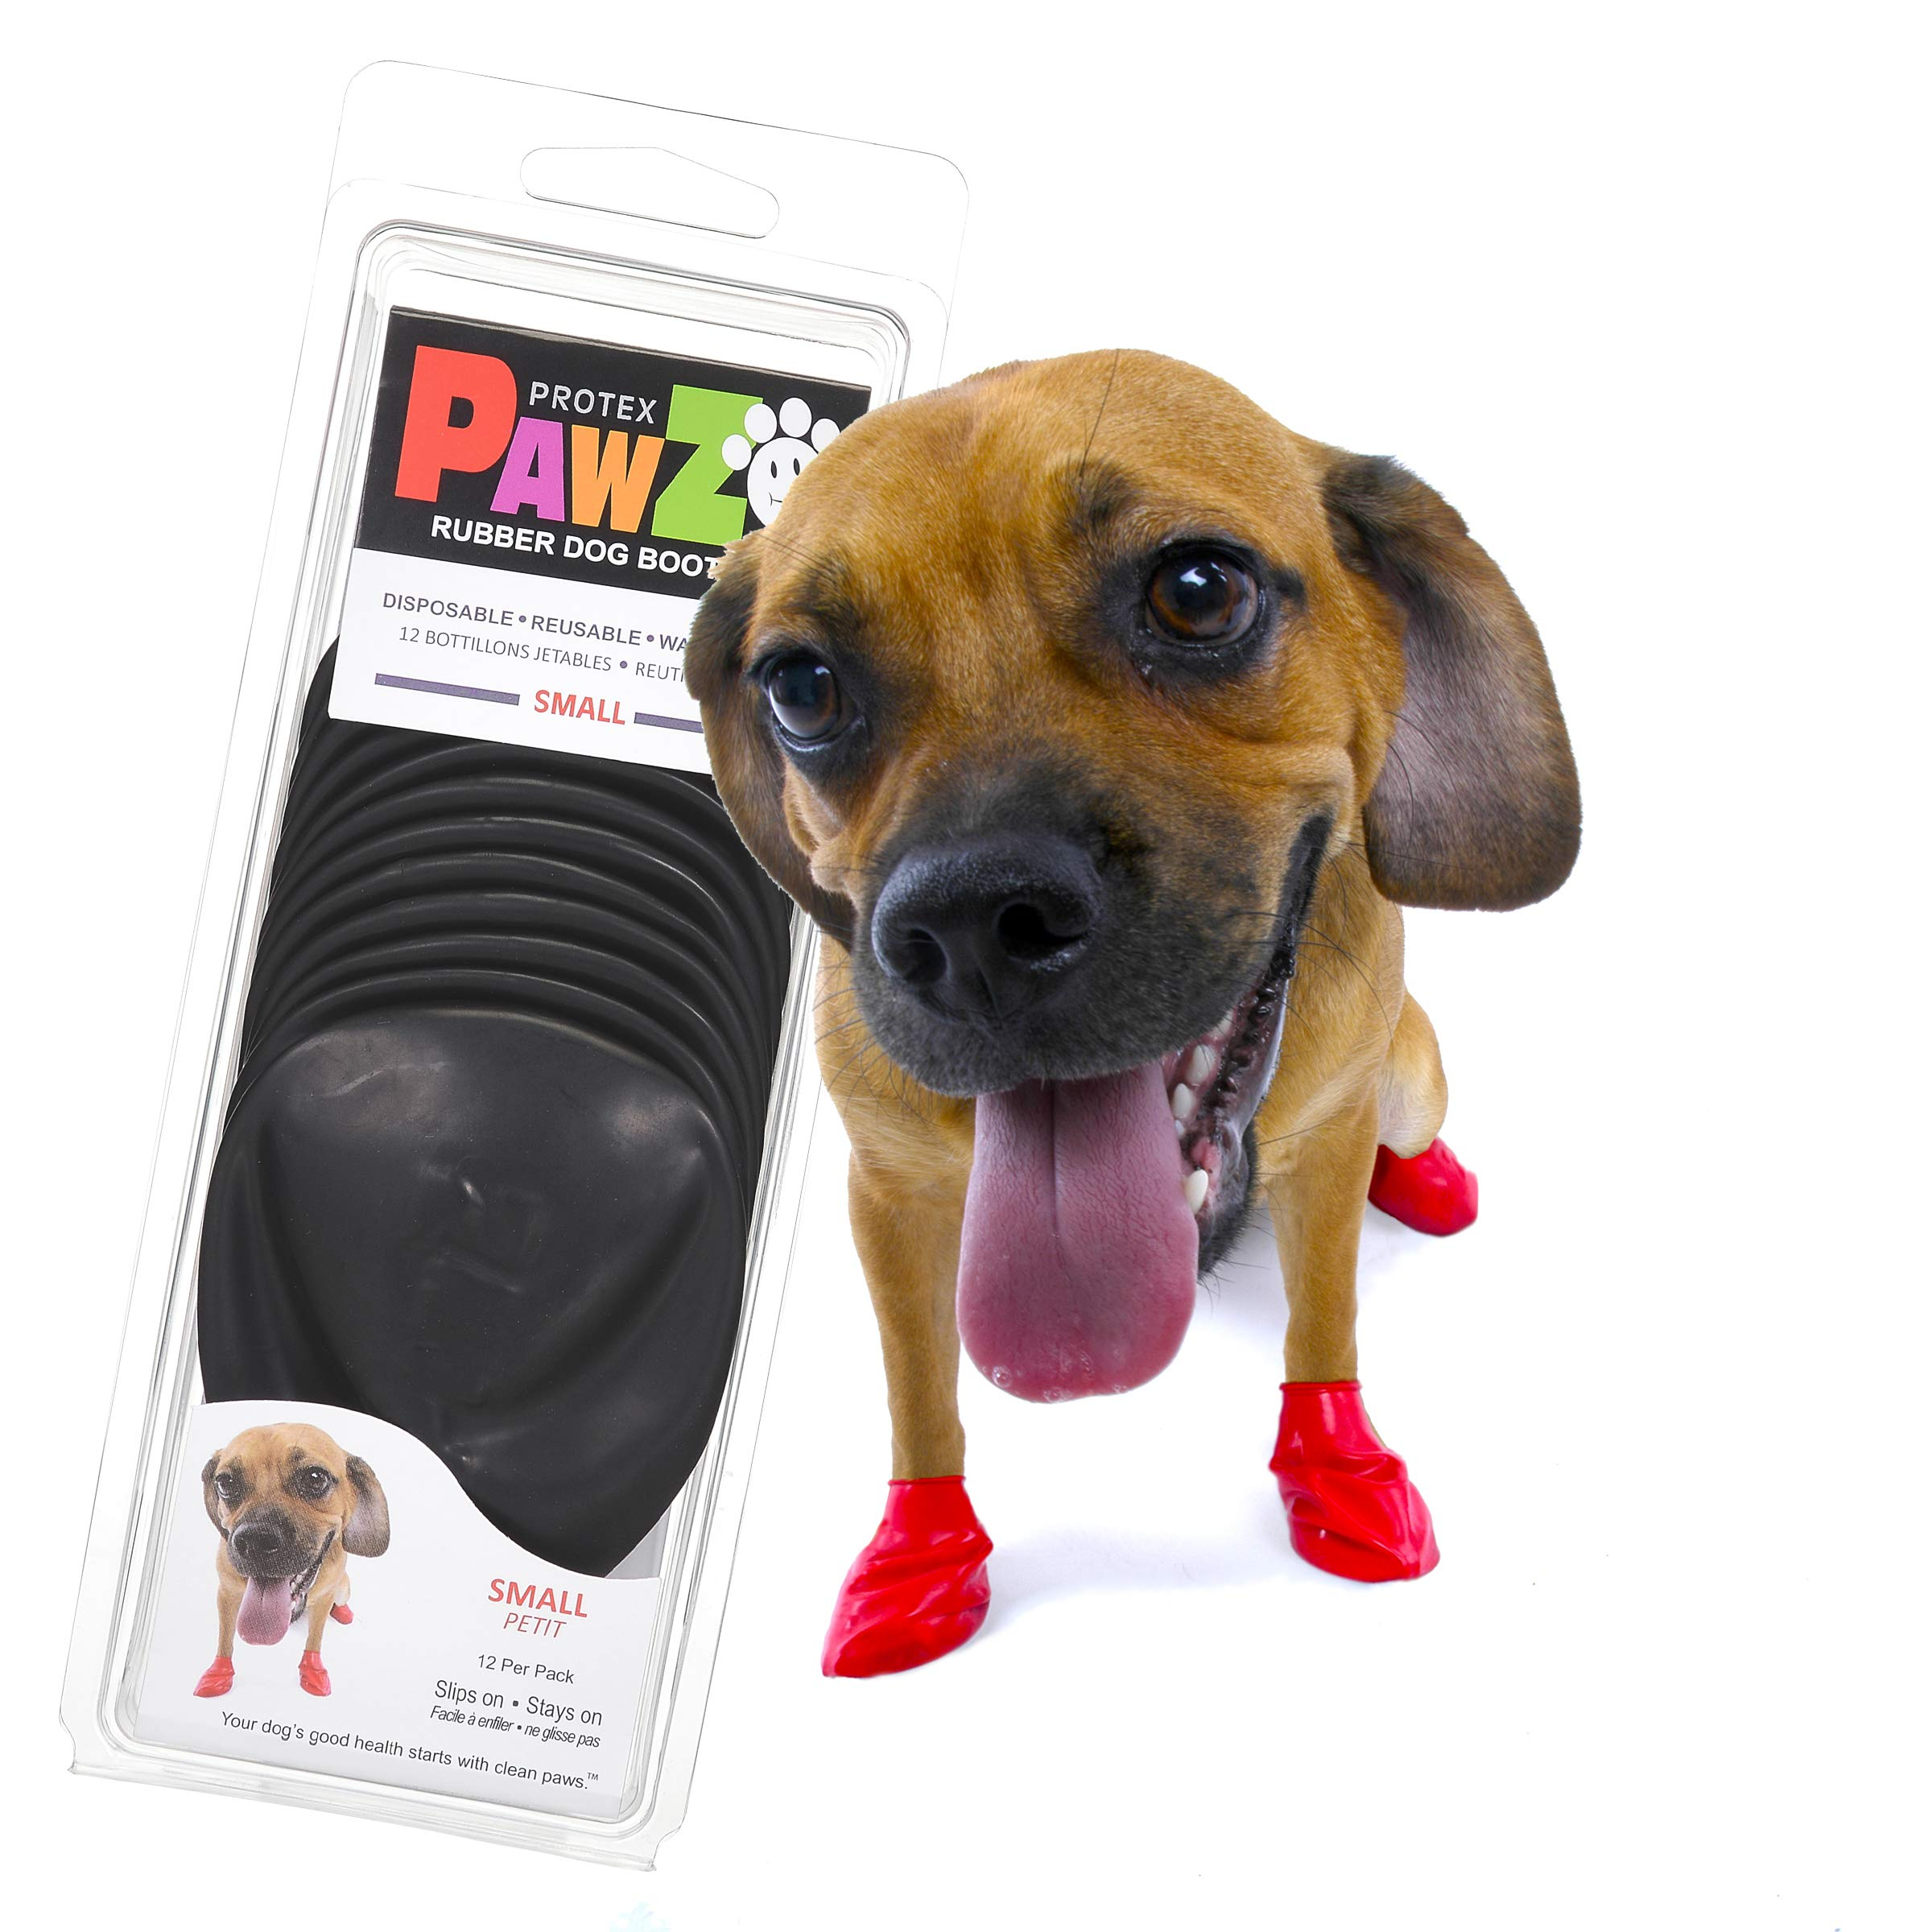 PawZ Dog Boots | Rubber Dog Booties | Waterproof Snow Boots for Dogs | Paw Protection for Dogs | 12 Dog Shoes per Pack…